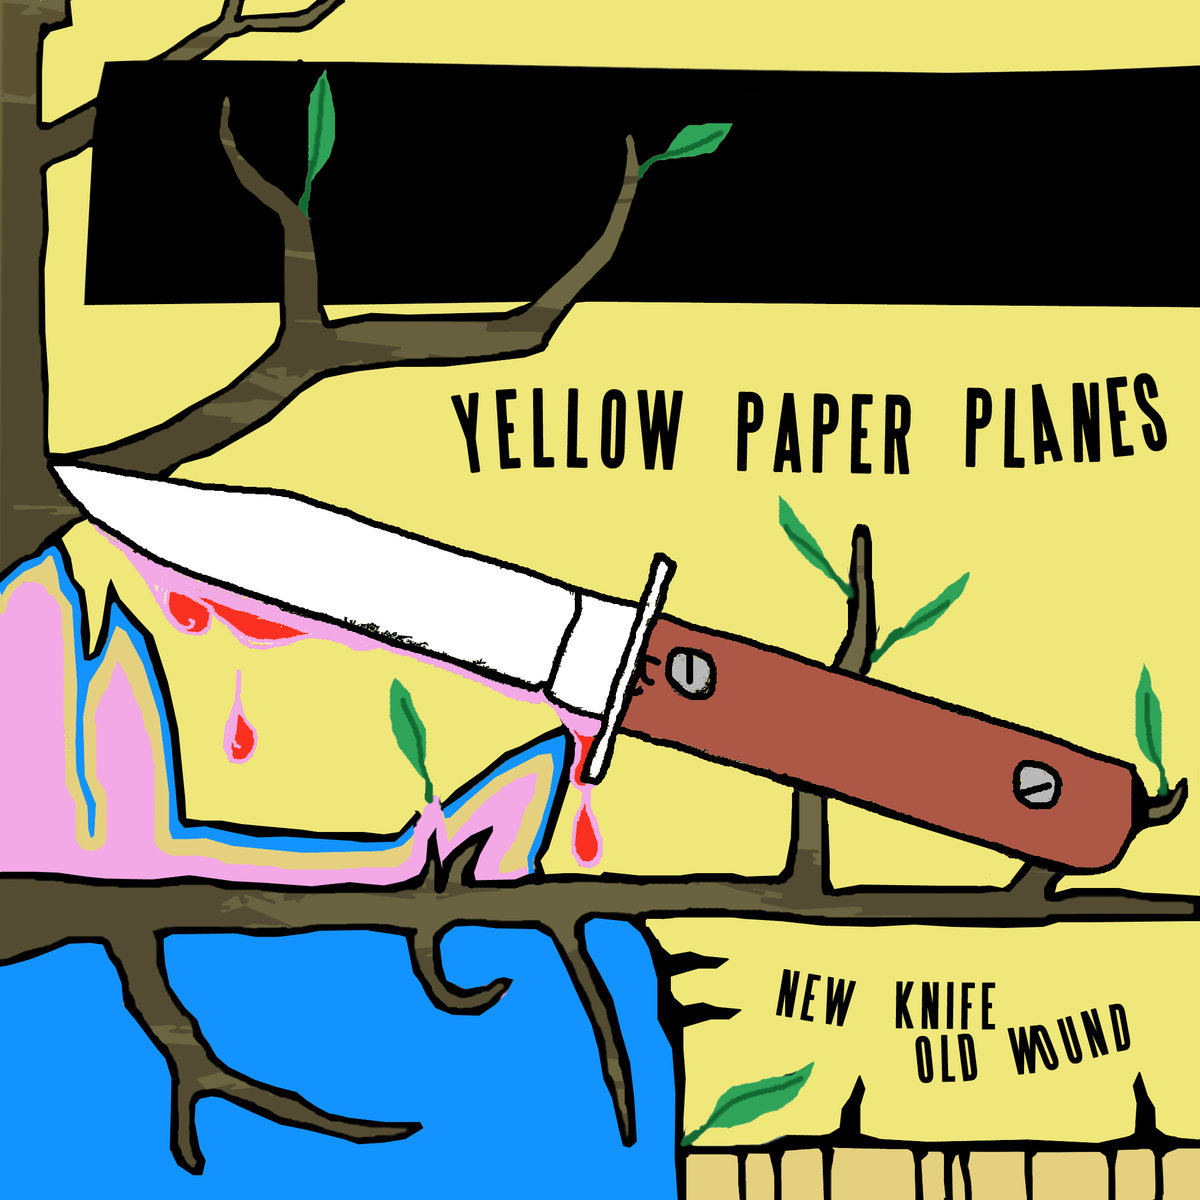 Knife wound clipart freeuse stock New Knife, Old Wound | Yellow Paper Planes freeuse stock